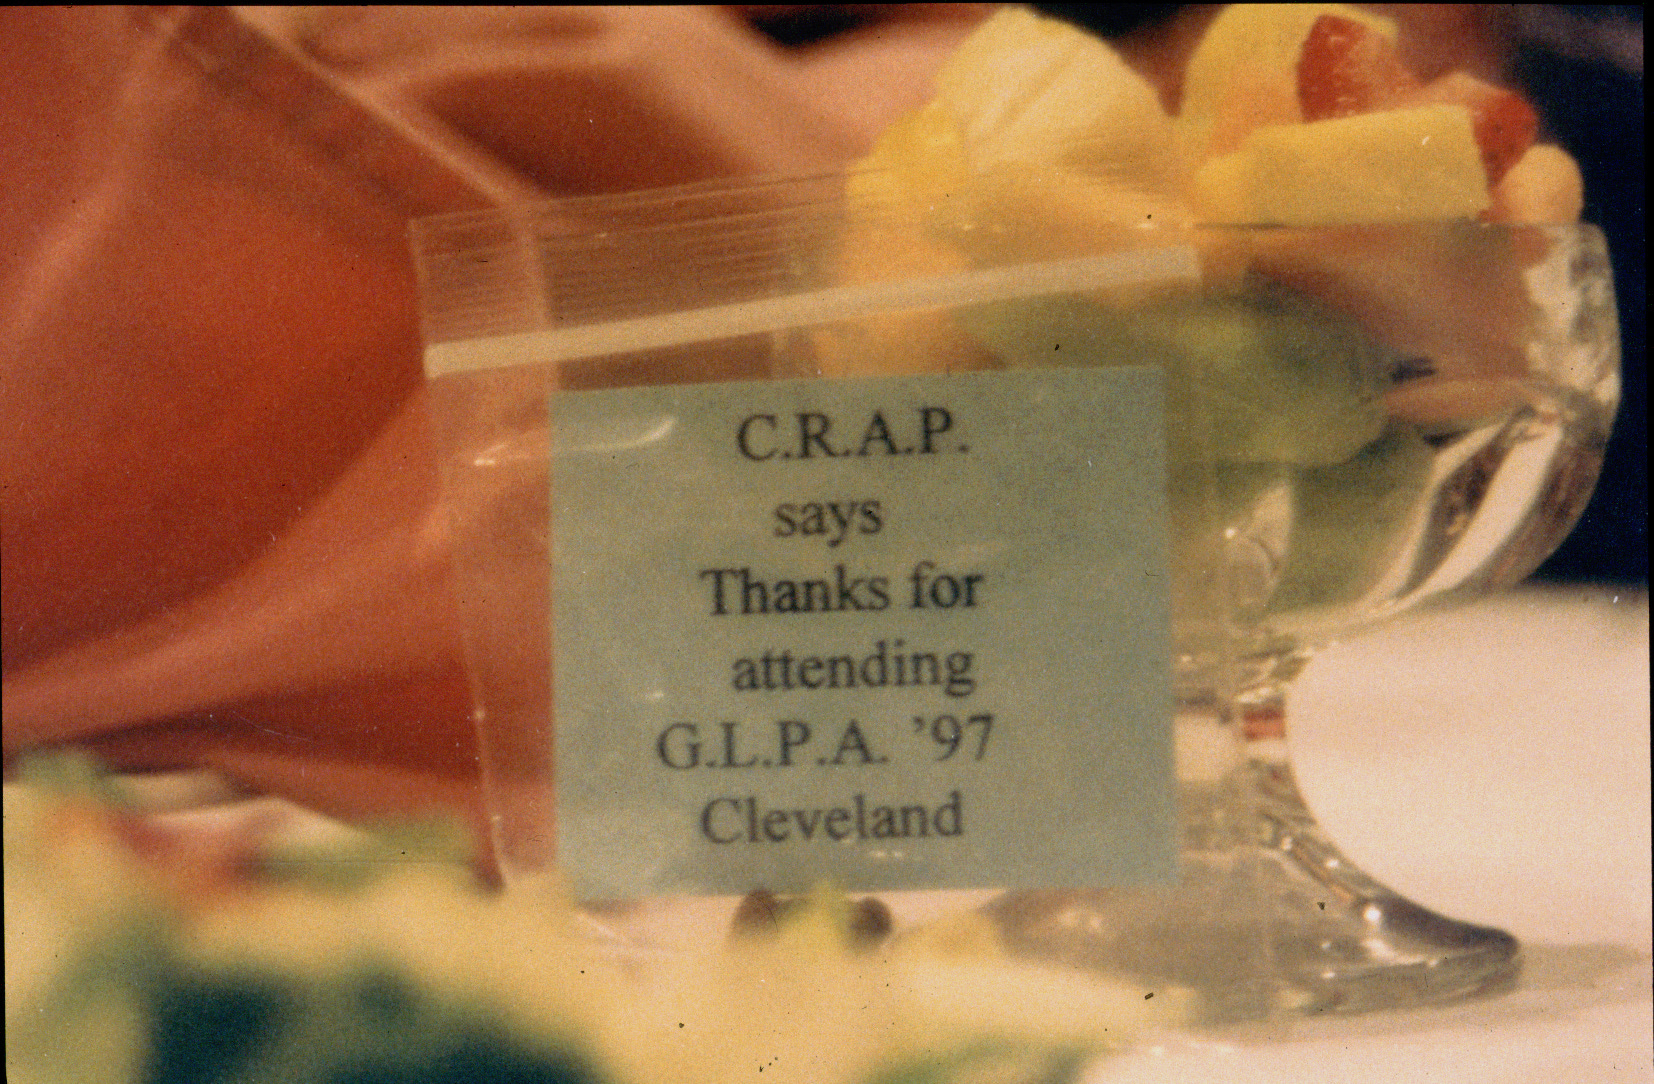 C.R.A.P. says thanks 1997